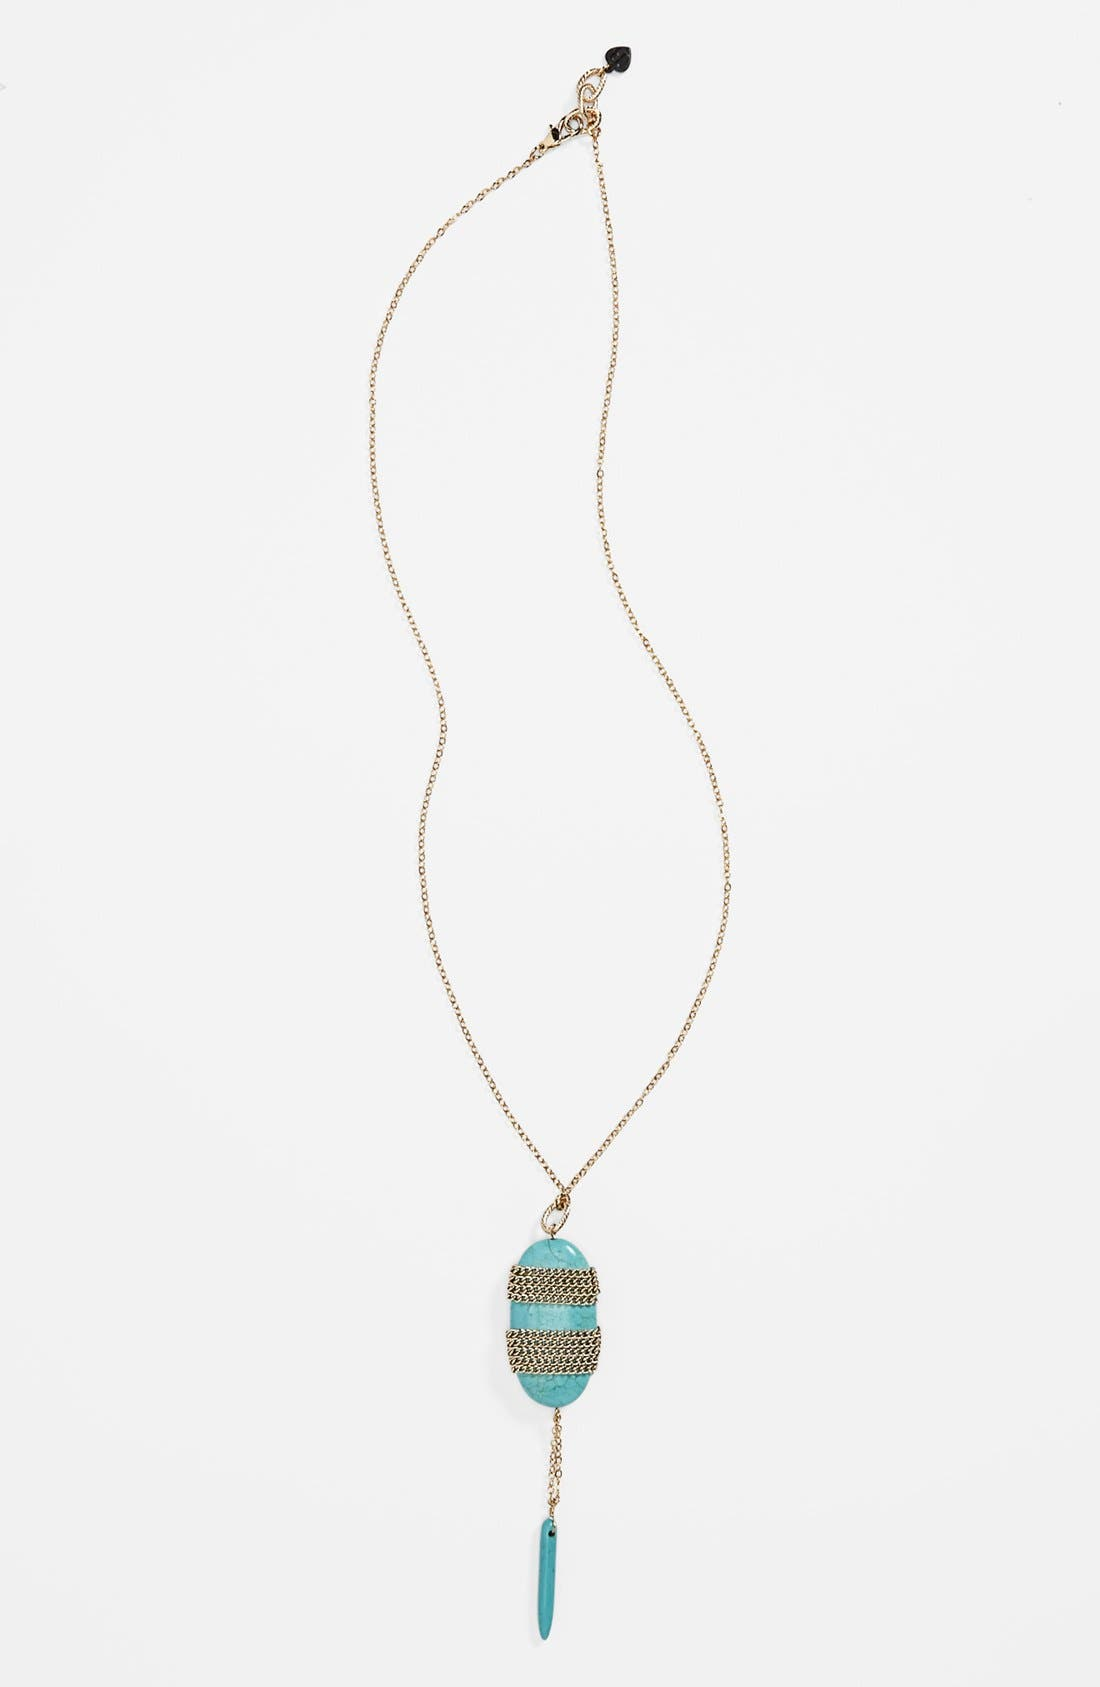 Alternate Image 1 Selected - Bonnie Jonas Turquoise Pendant Necklace